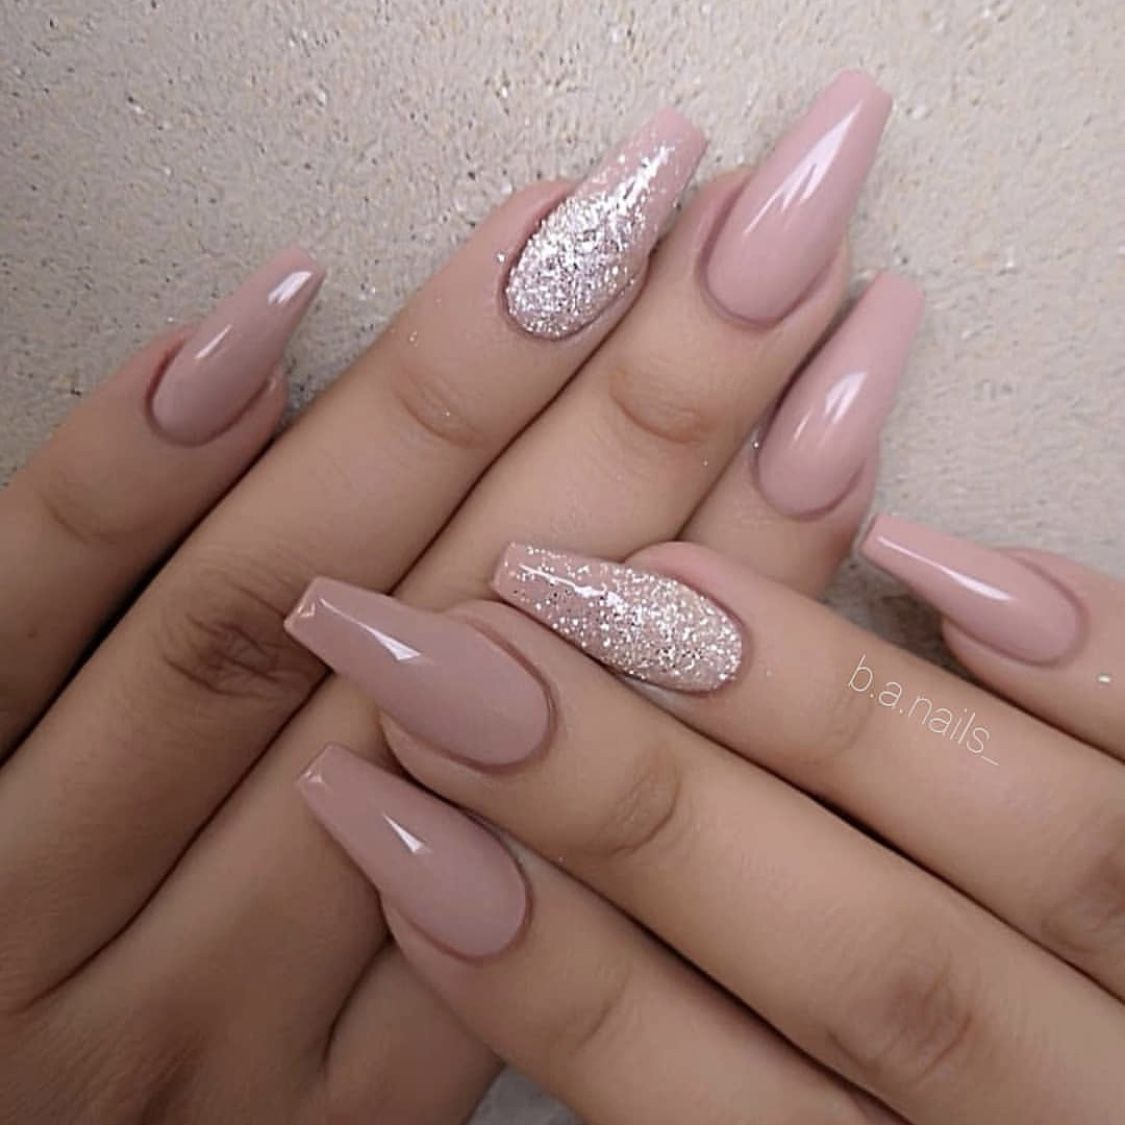 Pin By Bara Rojikova On Nails In 2020 Design Nehtu Umele Nehty Gelove Nehty